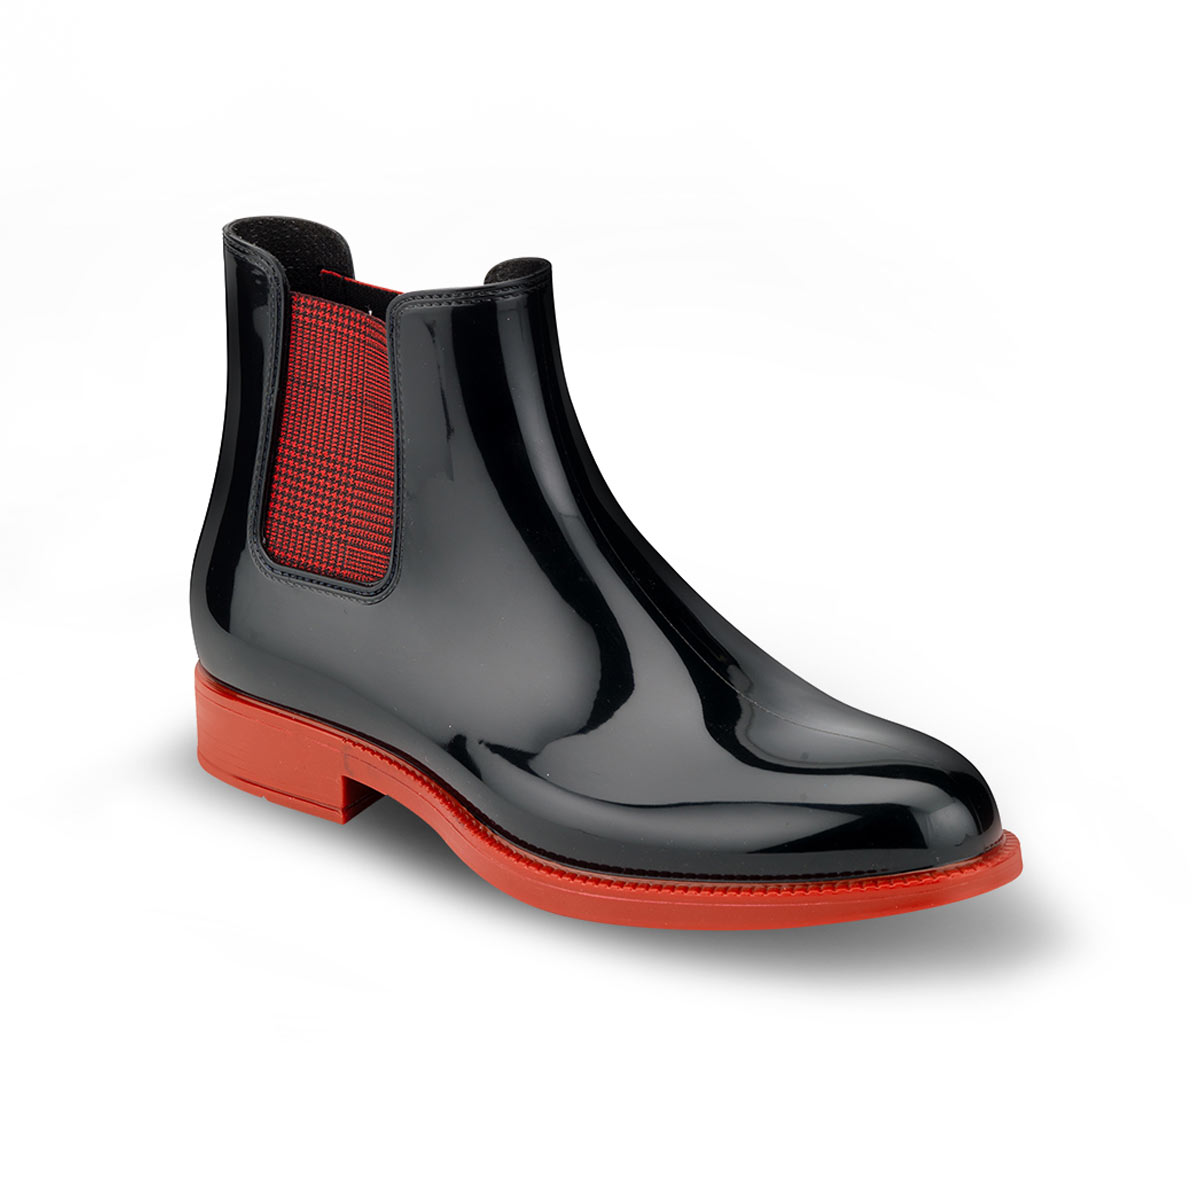 CHELSEA RAIN BOOT WITH RED SOLE AND ELASTIC